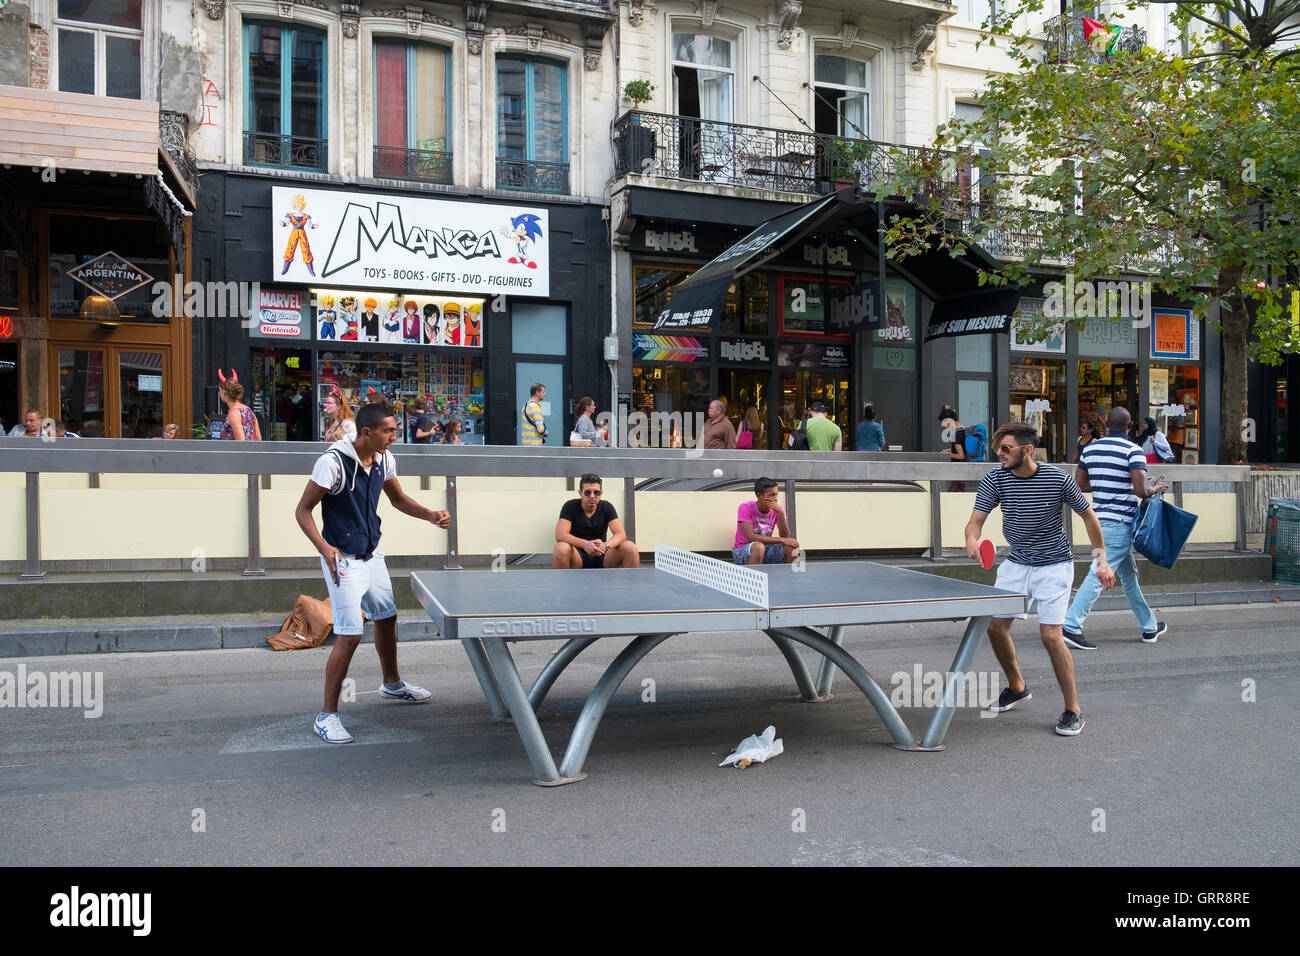 Deux personnes à jouer au tennis de table street bruxelles Photo Stock